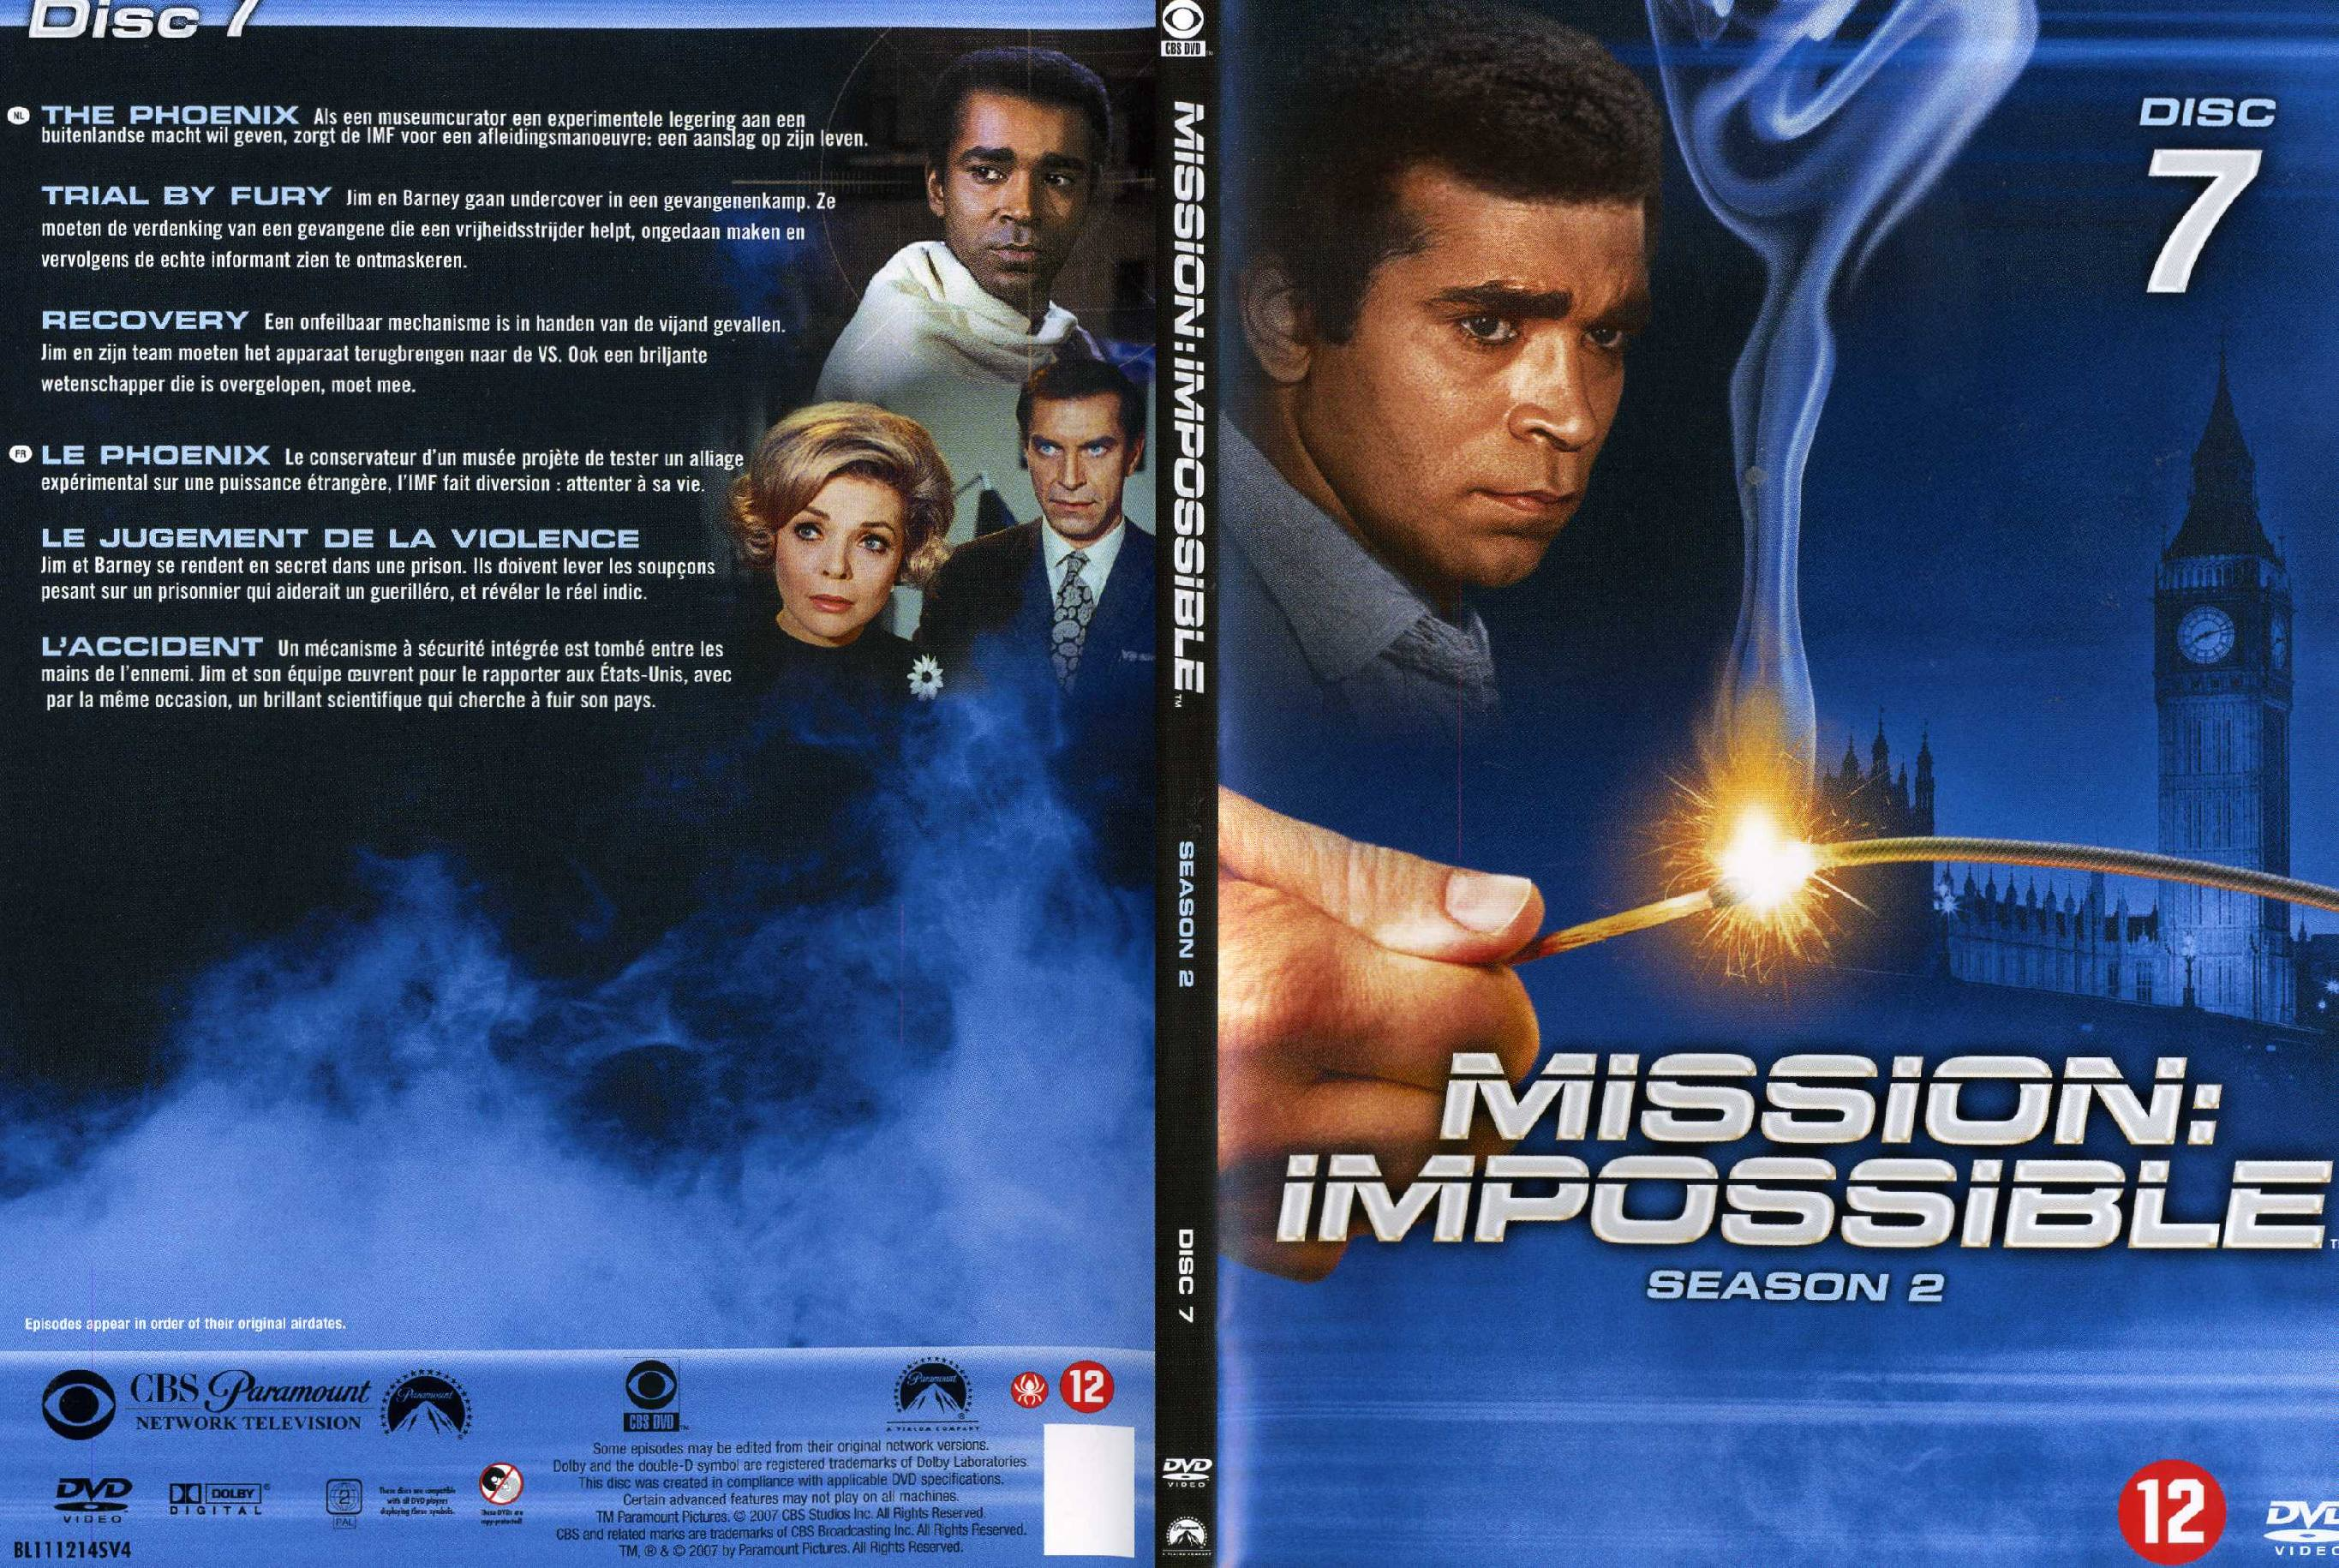 In the 4th installment of the Mission Impossible series, Ethan Hunt (Cruise) and his team are racing against time to track down a dangerous terrorist named Hendricks (Nyqvist), who has gained access to Russian nuclear launch codes and is planning a strike on the United States.